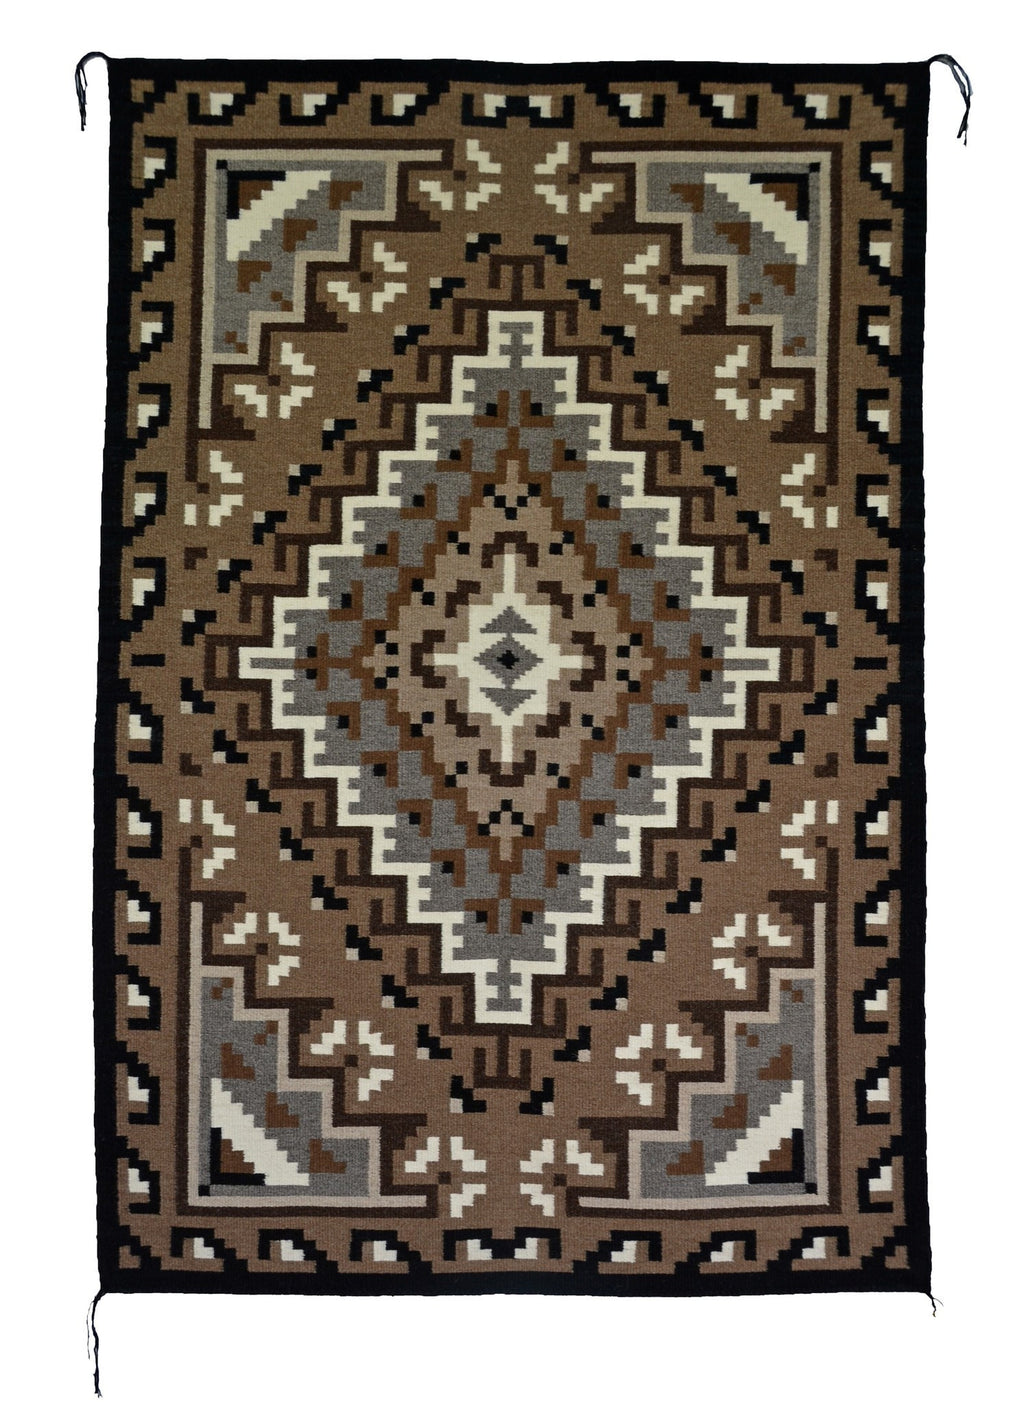 "Two Grey Hills Navajo Rug : Helen Bia : Churro 1503 : 39"" x 62"" - Getzwiller's Nizhoni Ranch Gallery"